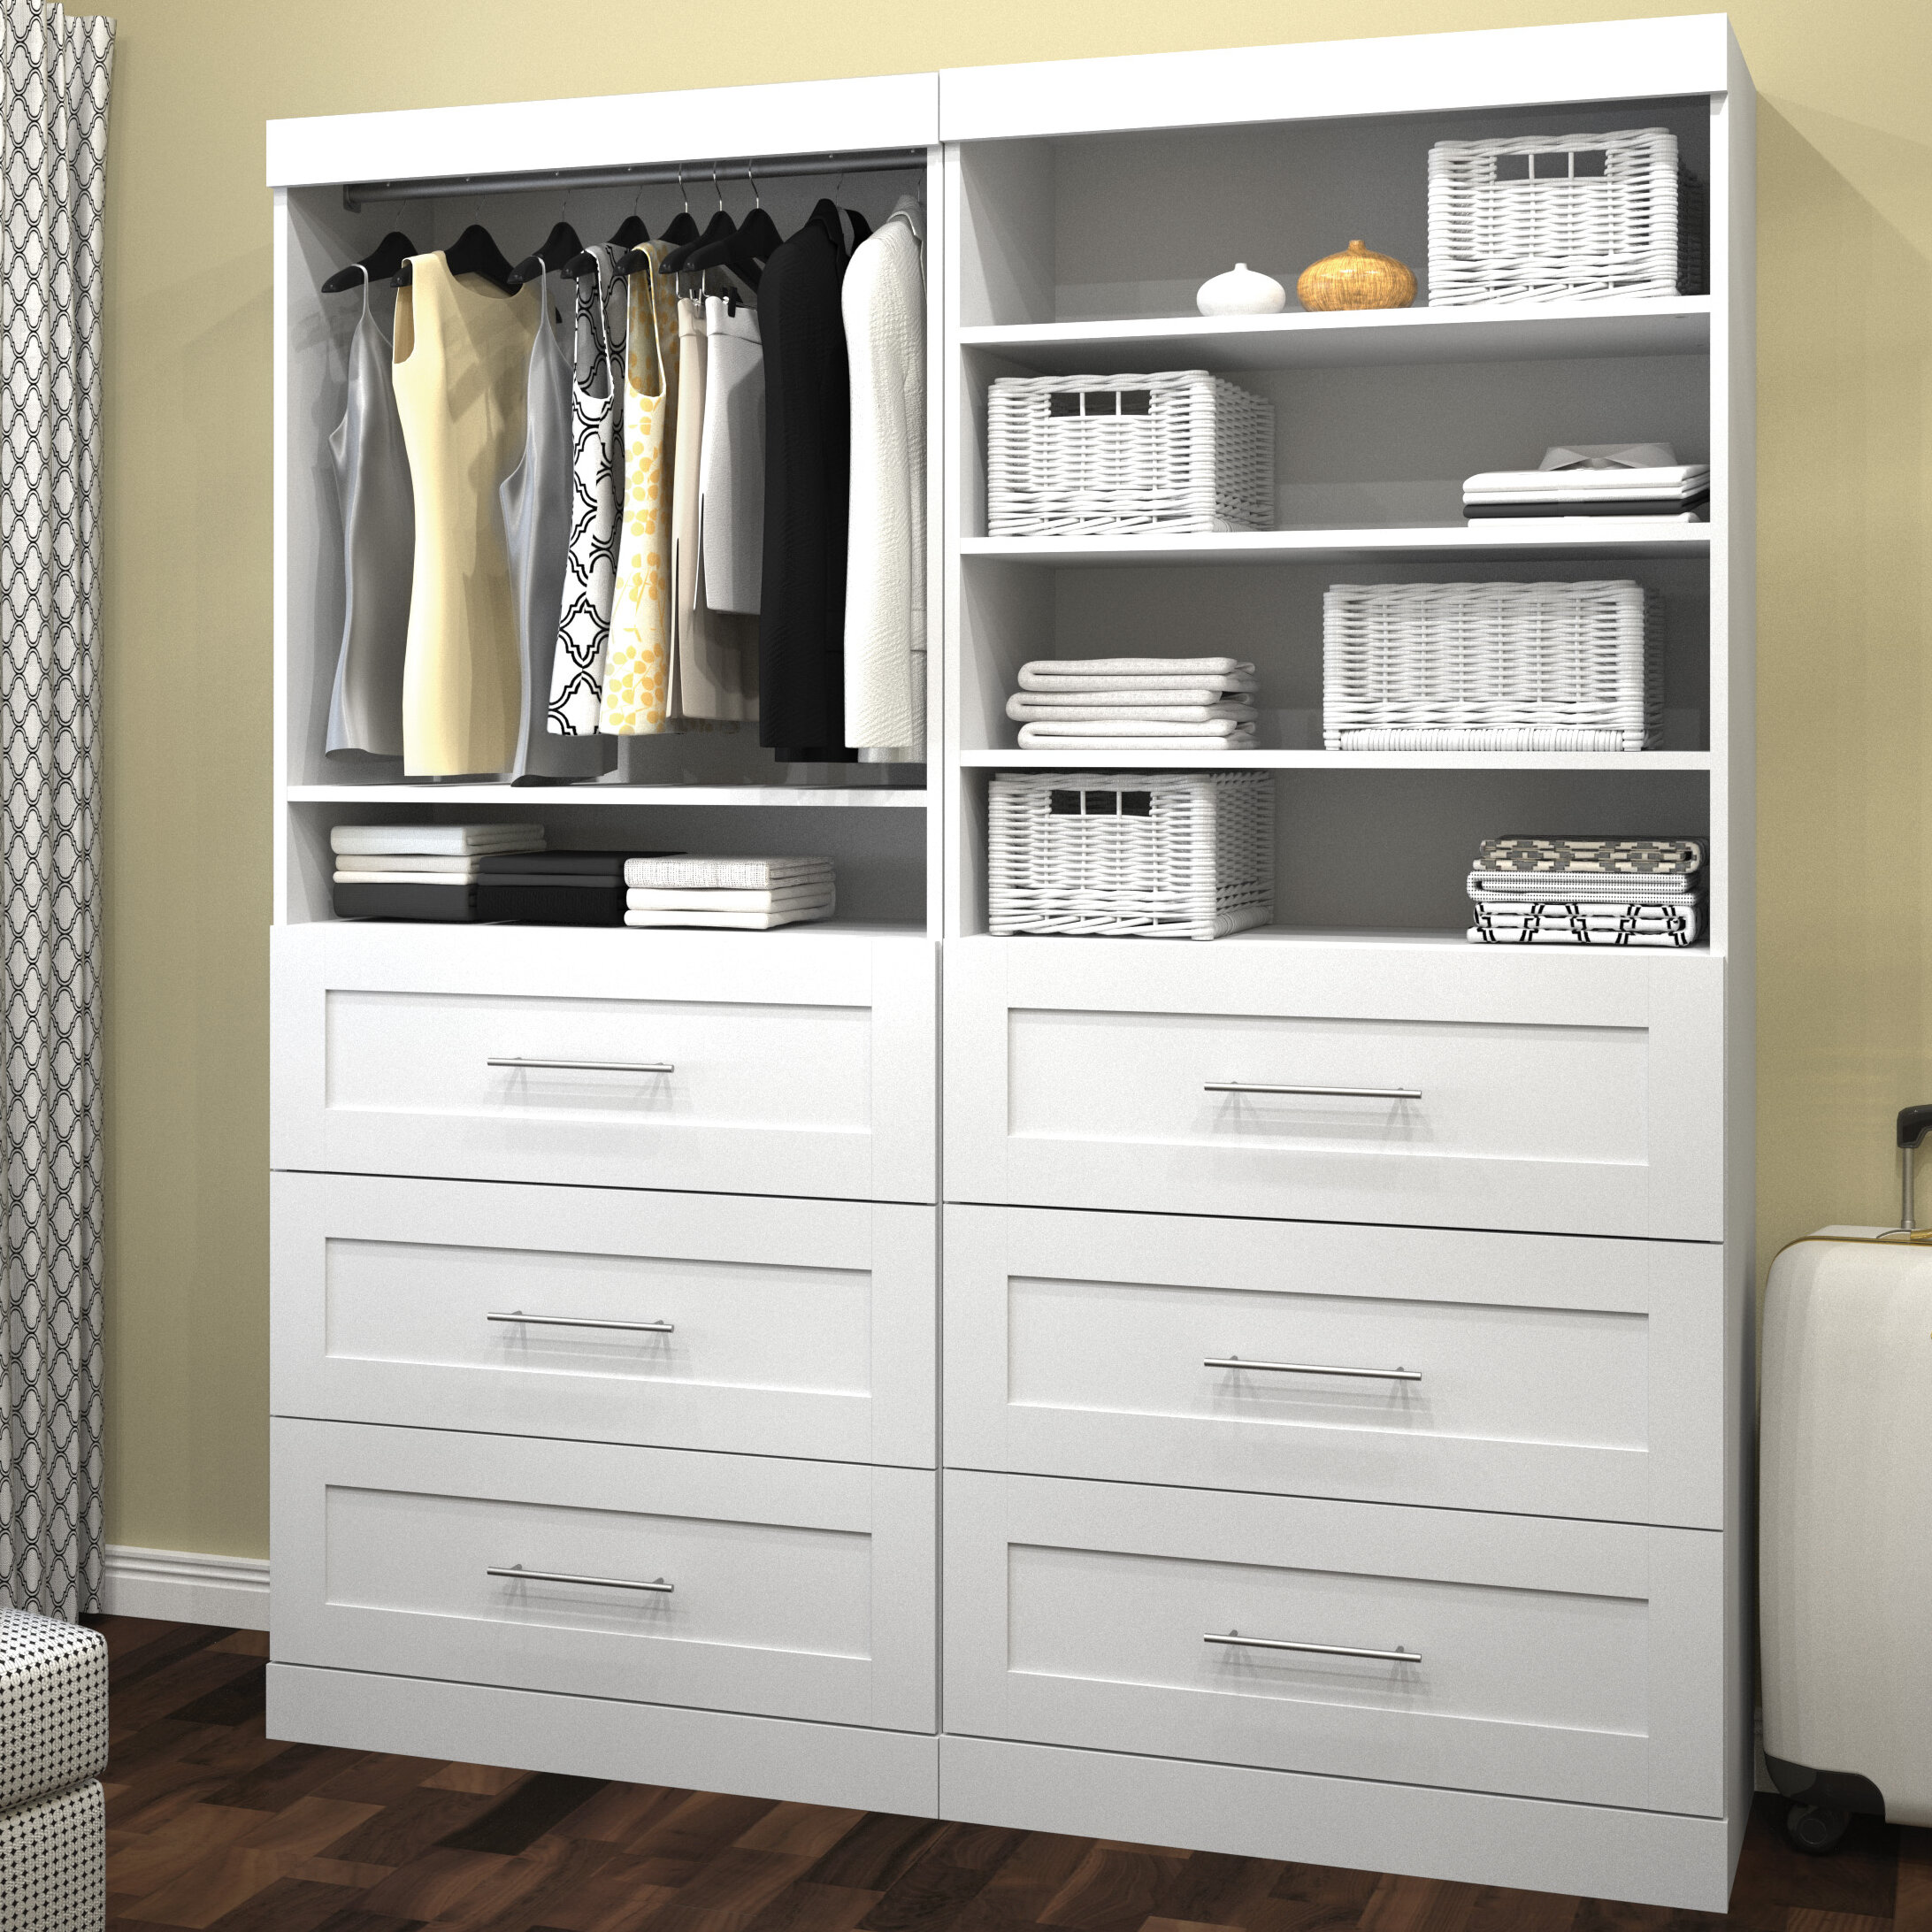 painted and drawers with wardrobe closets white large for closet wooden